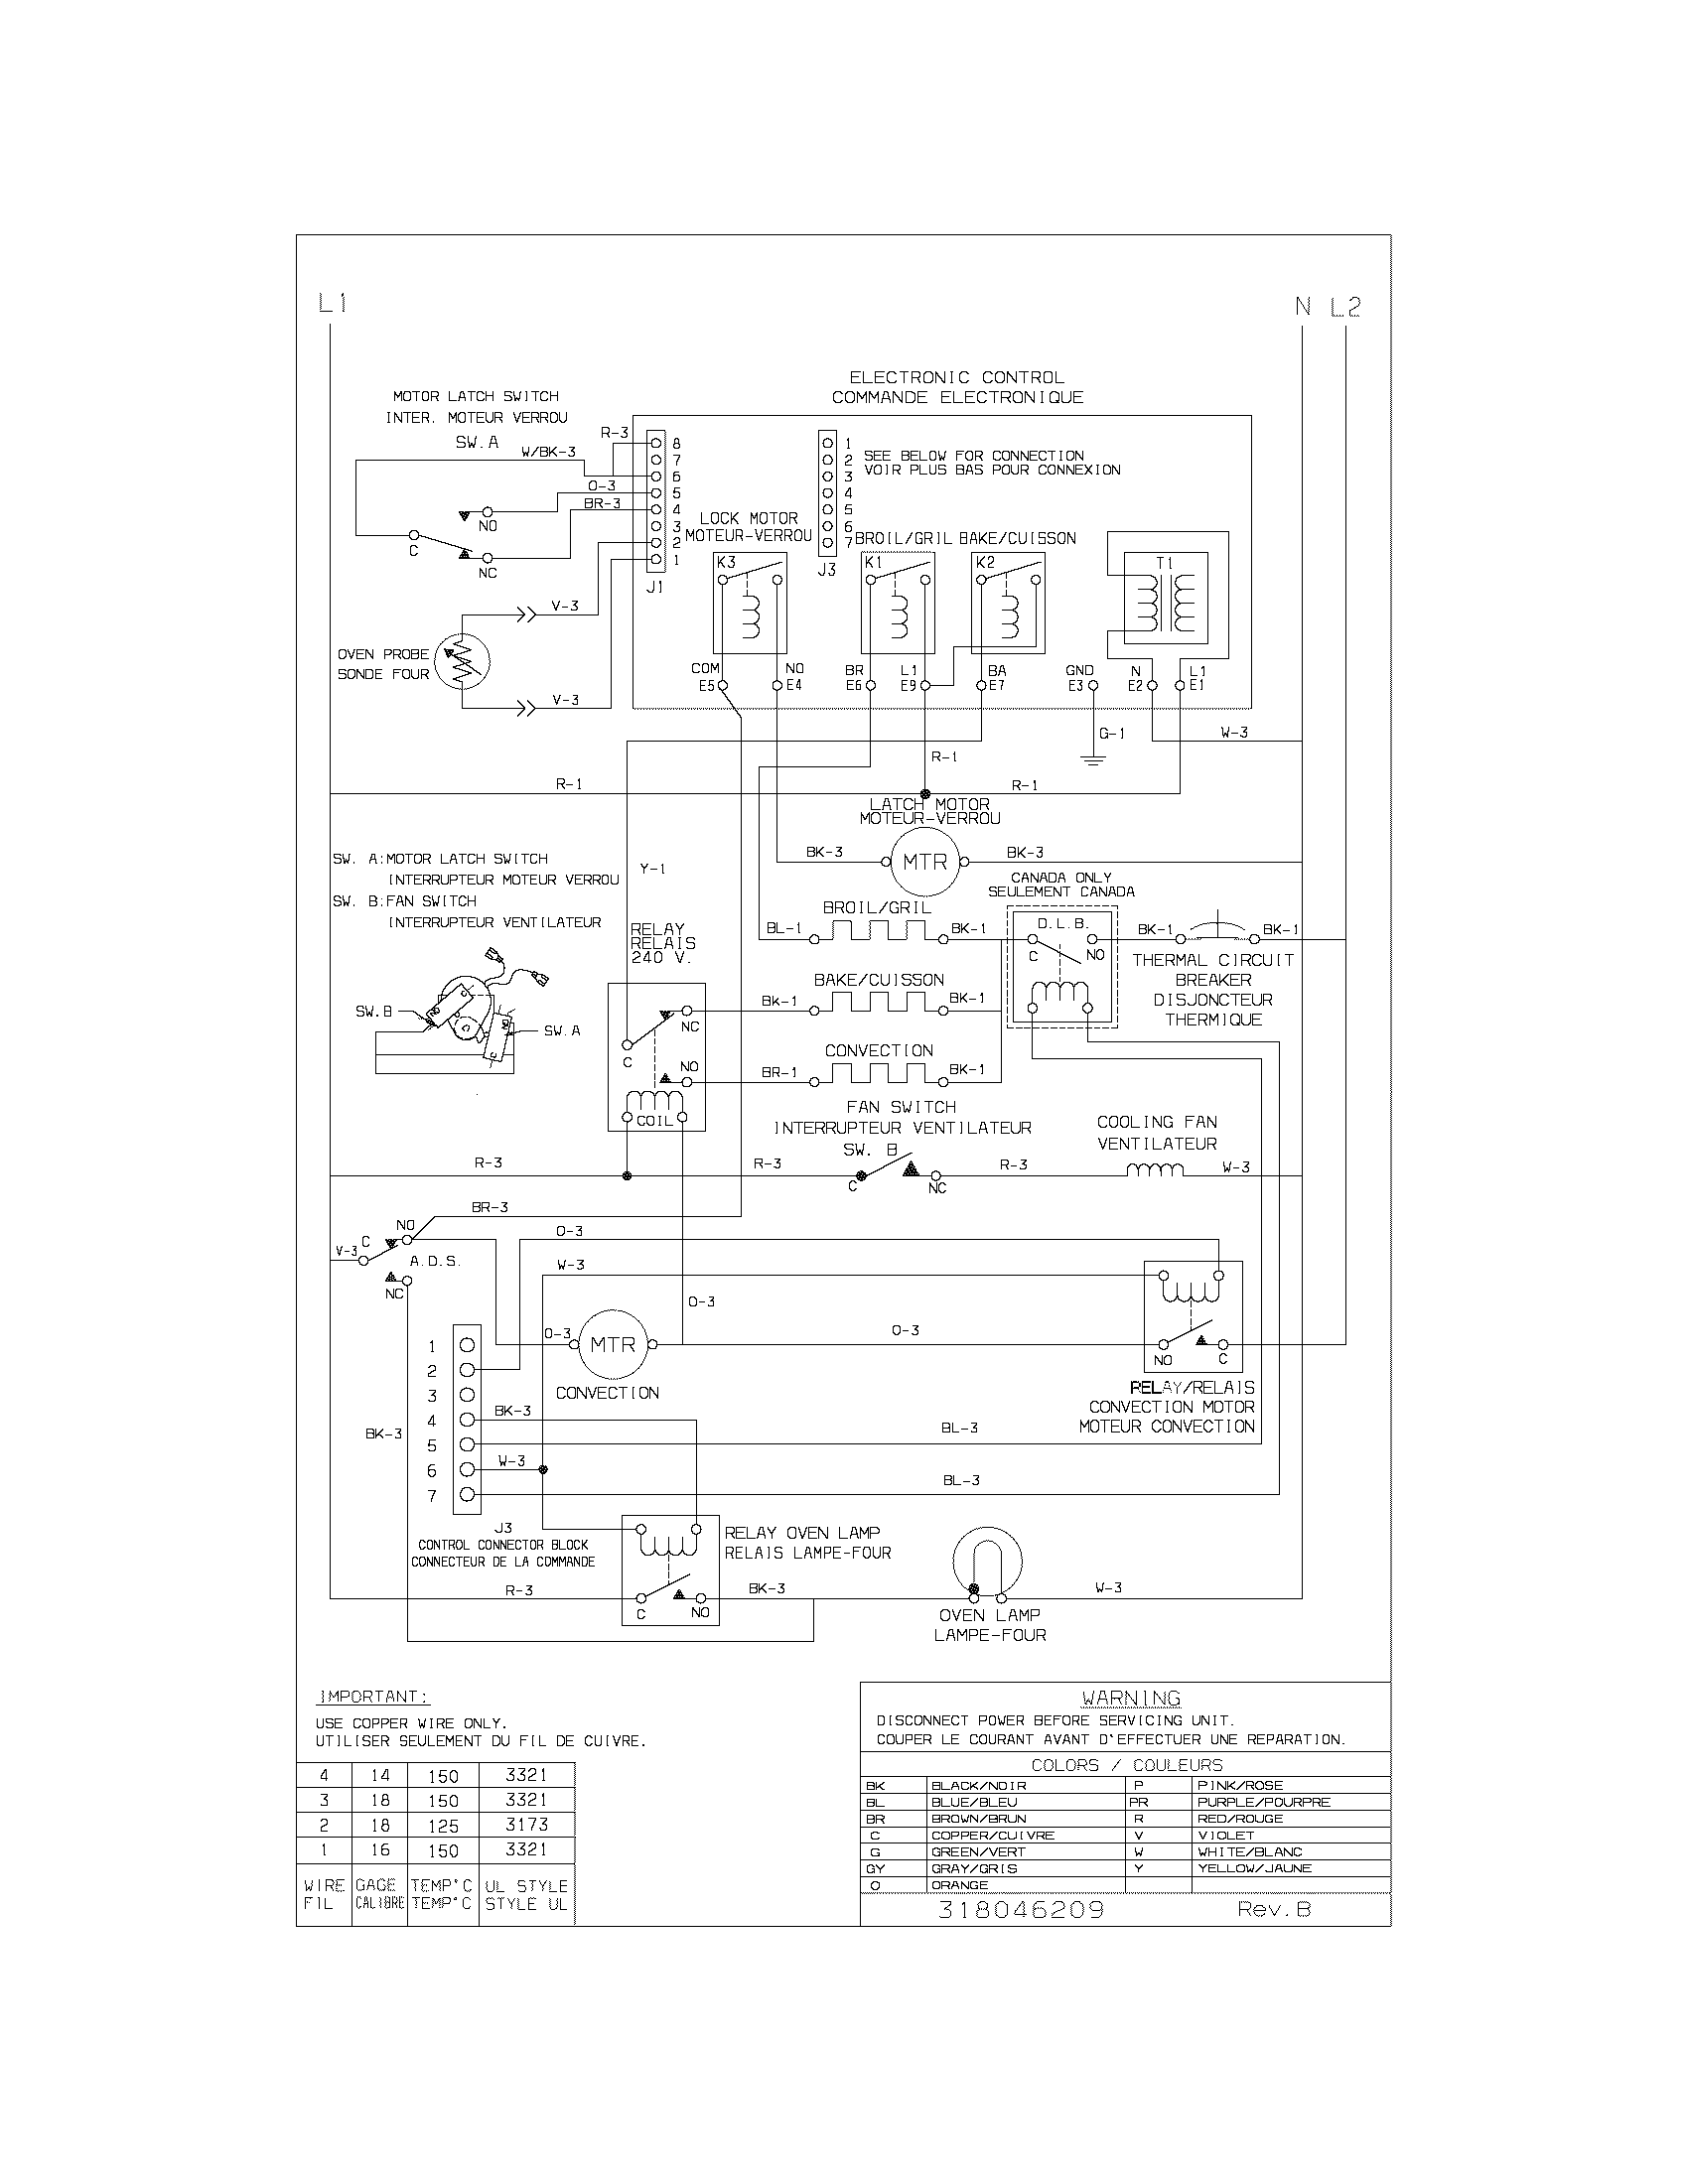 Frigidaire Dishwasher Wiring Diagram 36 Images Ge Spacemaker Microwave Parts Cgeb27s7cs1 Electric Walloven Timer Stove Clocks And At